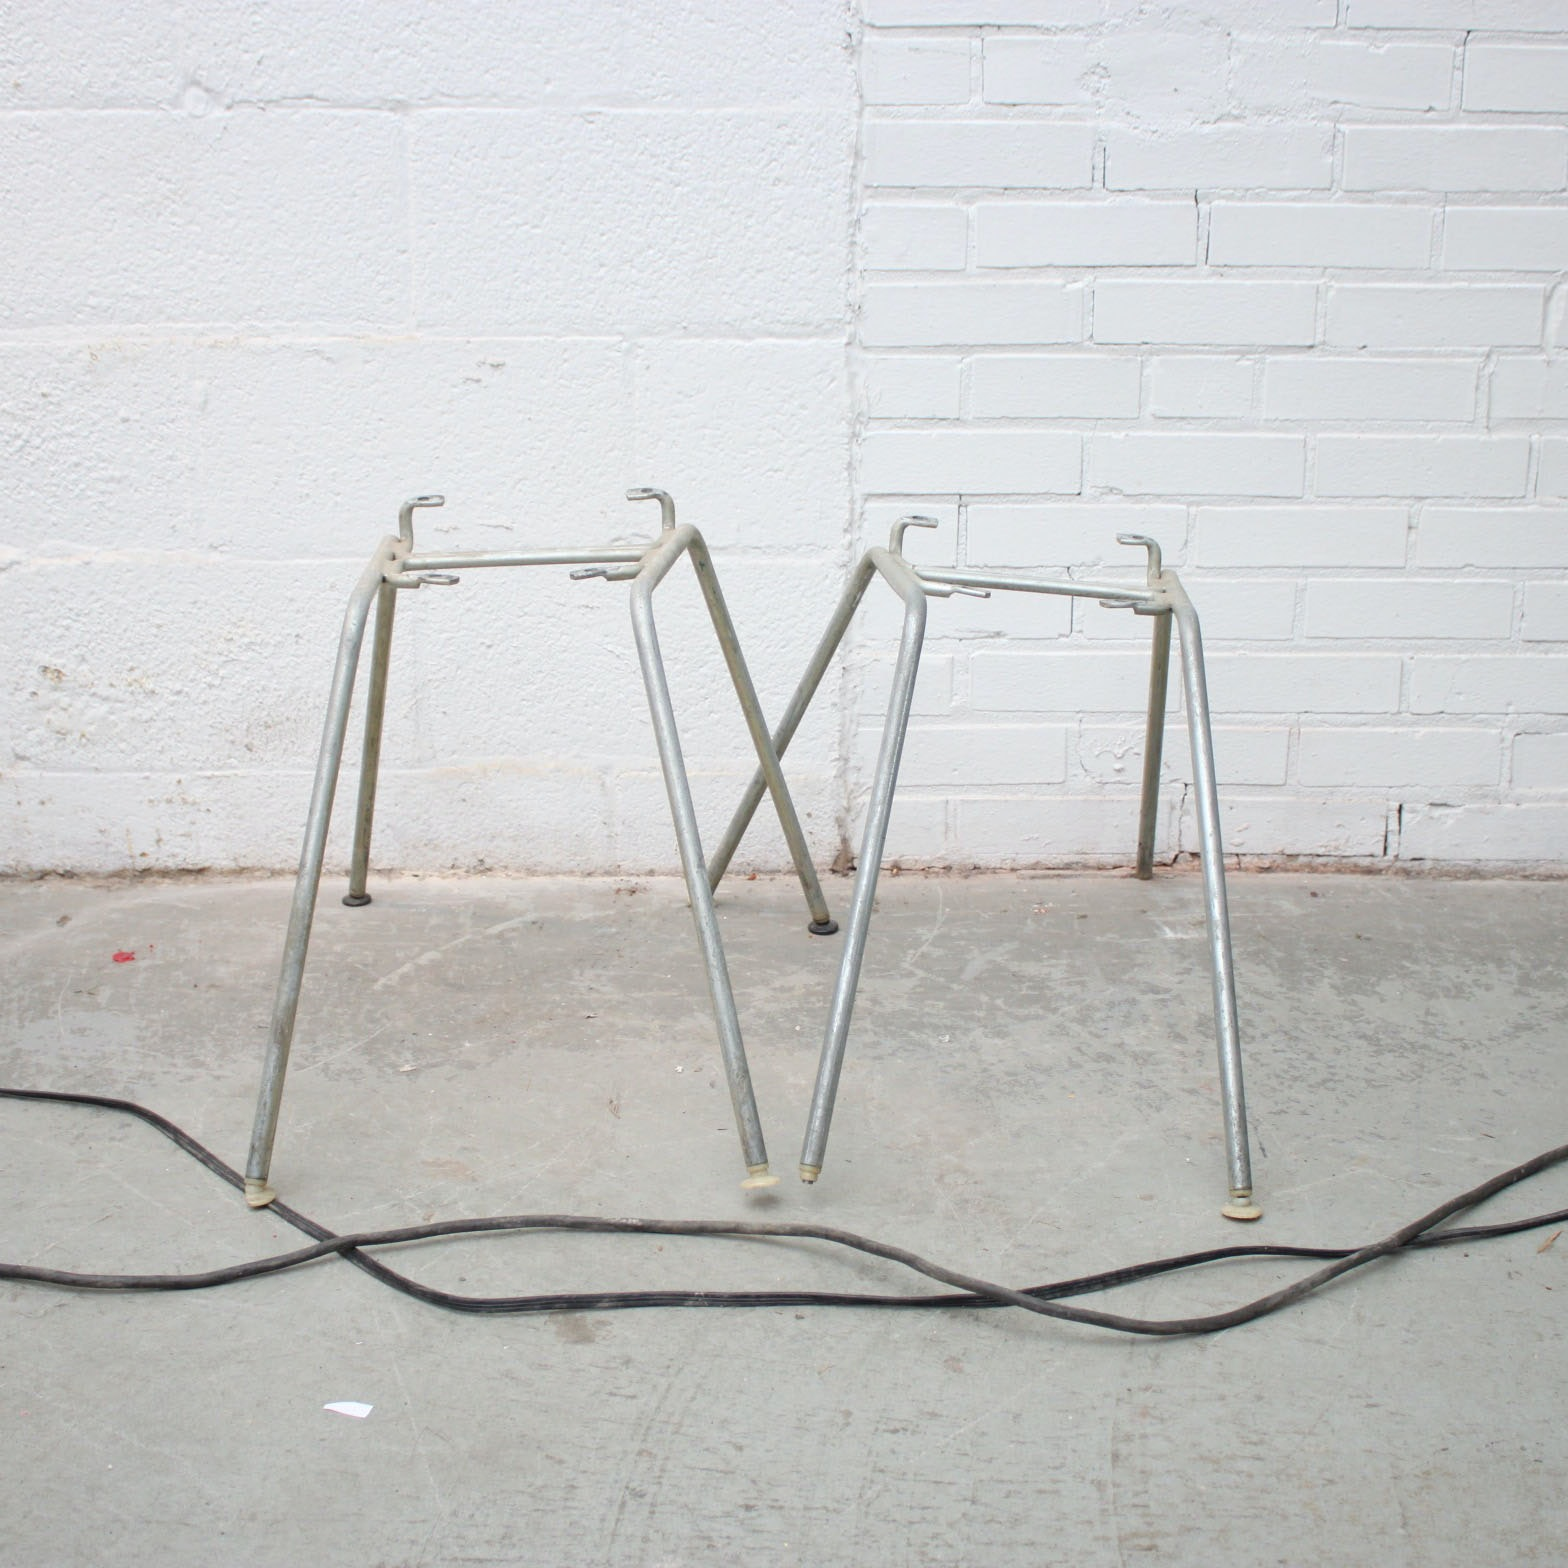 Vintage Herman Miller Shell Chair Style Metal Chair Frames